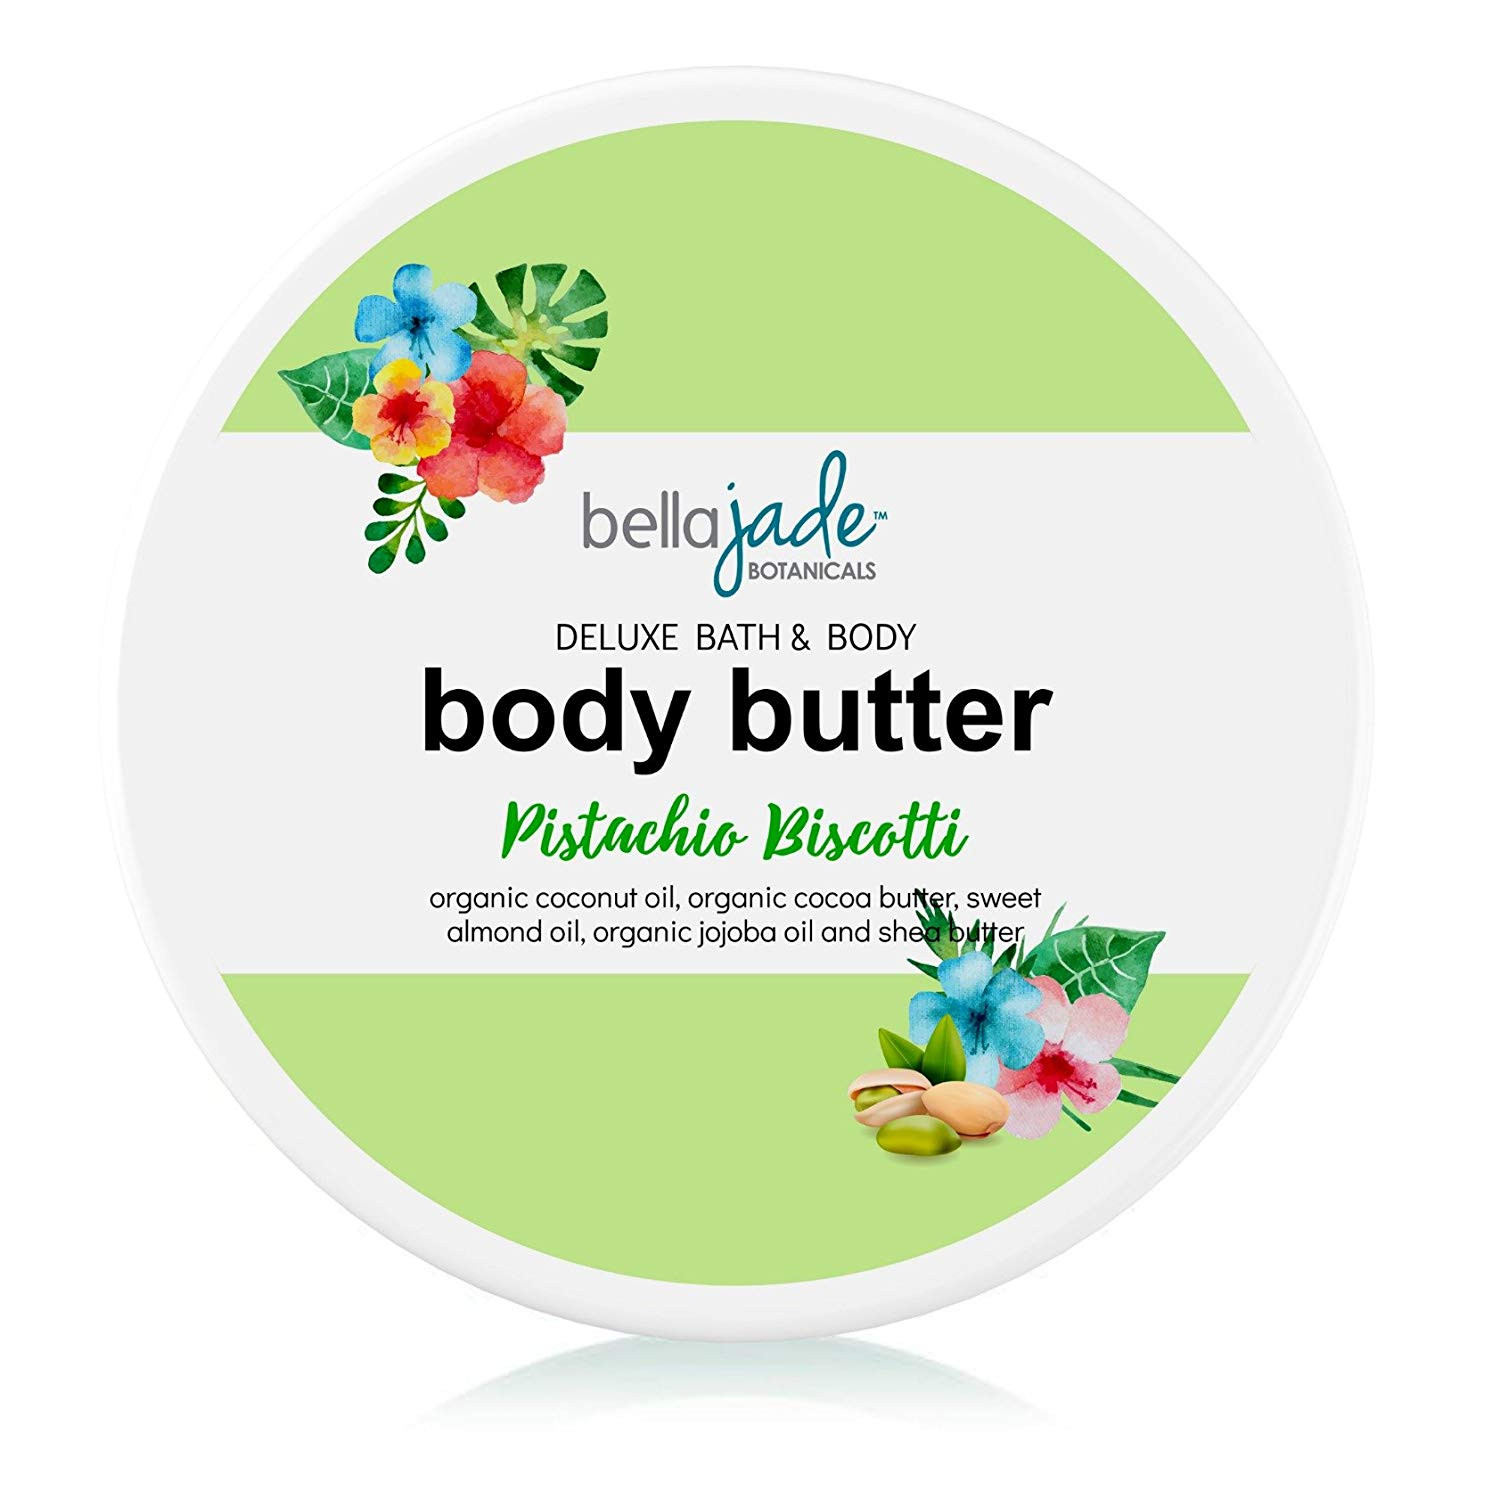 Amazon Whipped Body Butter Cream for Women Organic & Natural Dry Skin Moisturizer Lotion